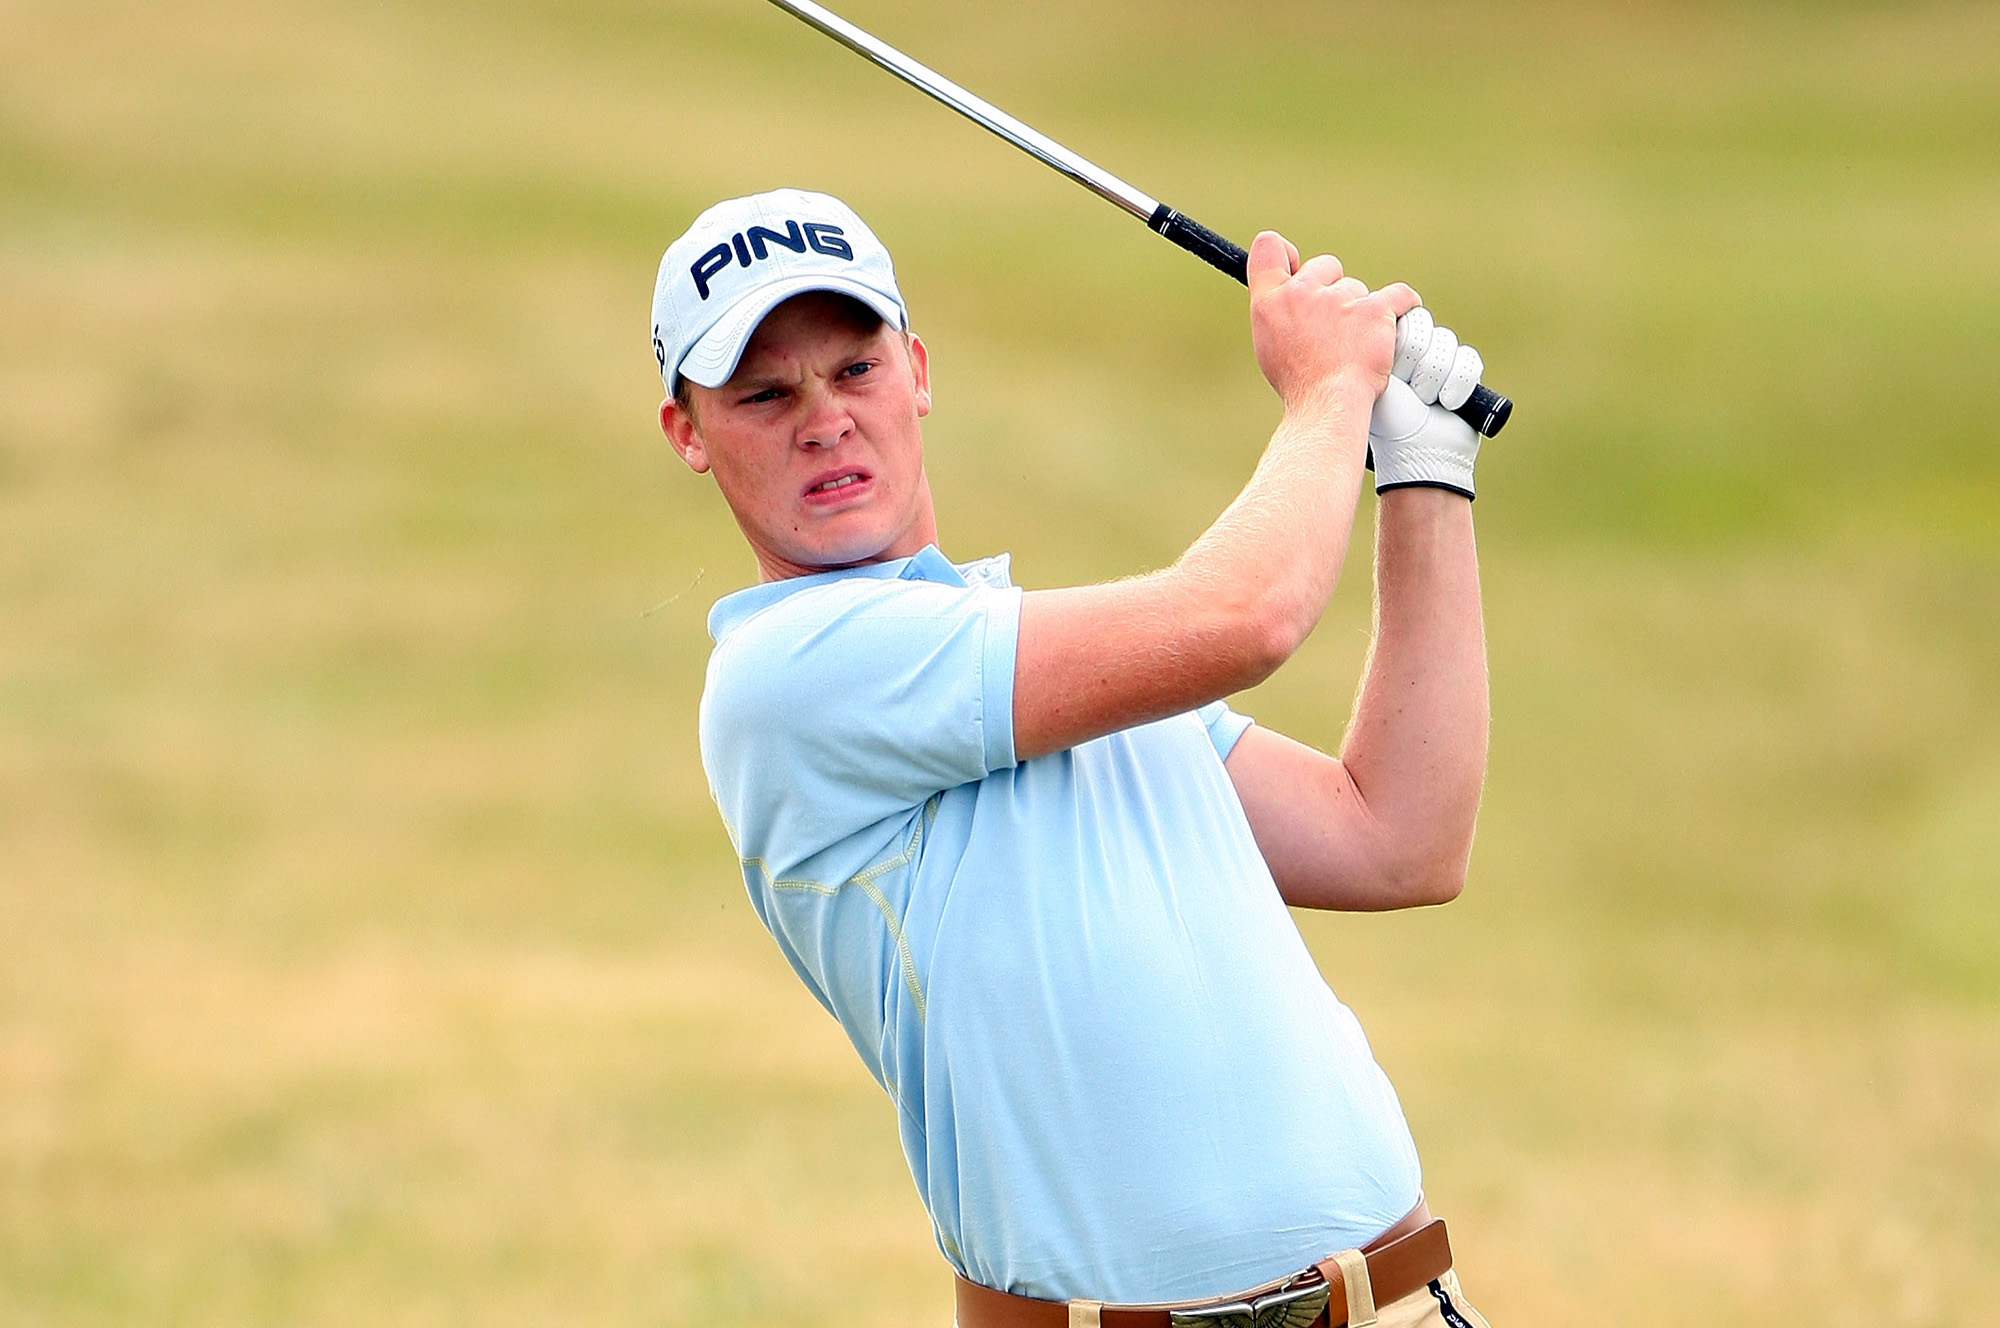 Danny Willett, pictured at the 2007 British Amateur (Getty Images)